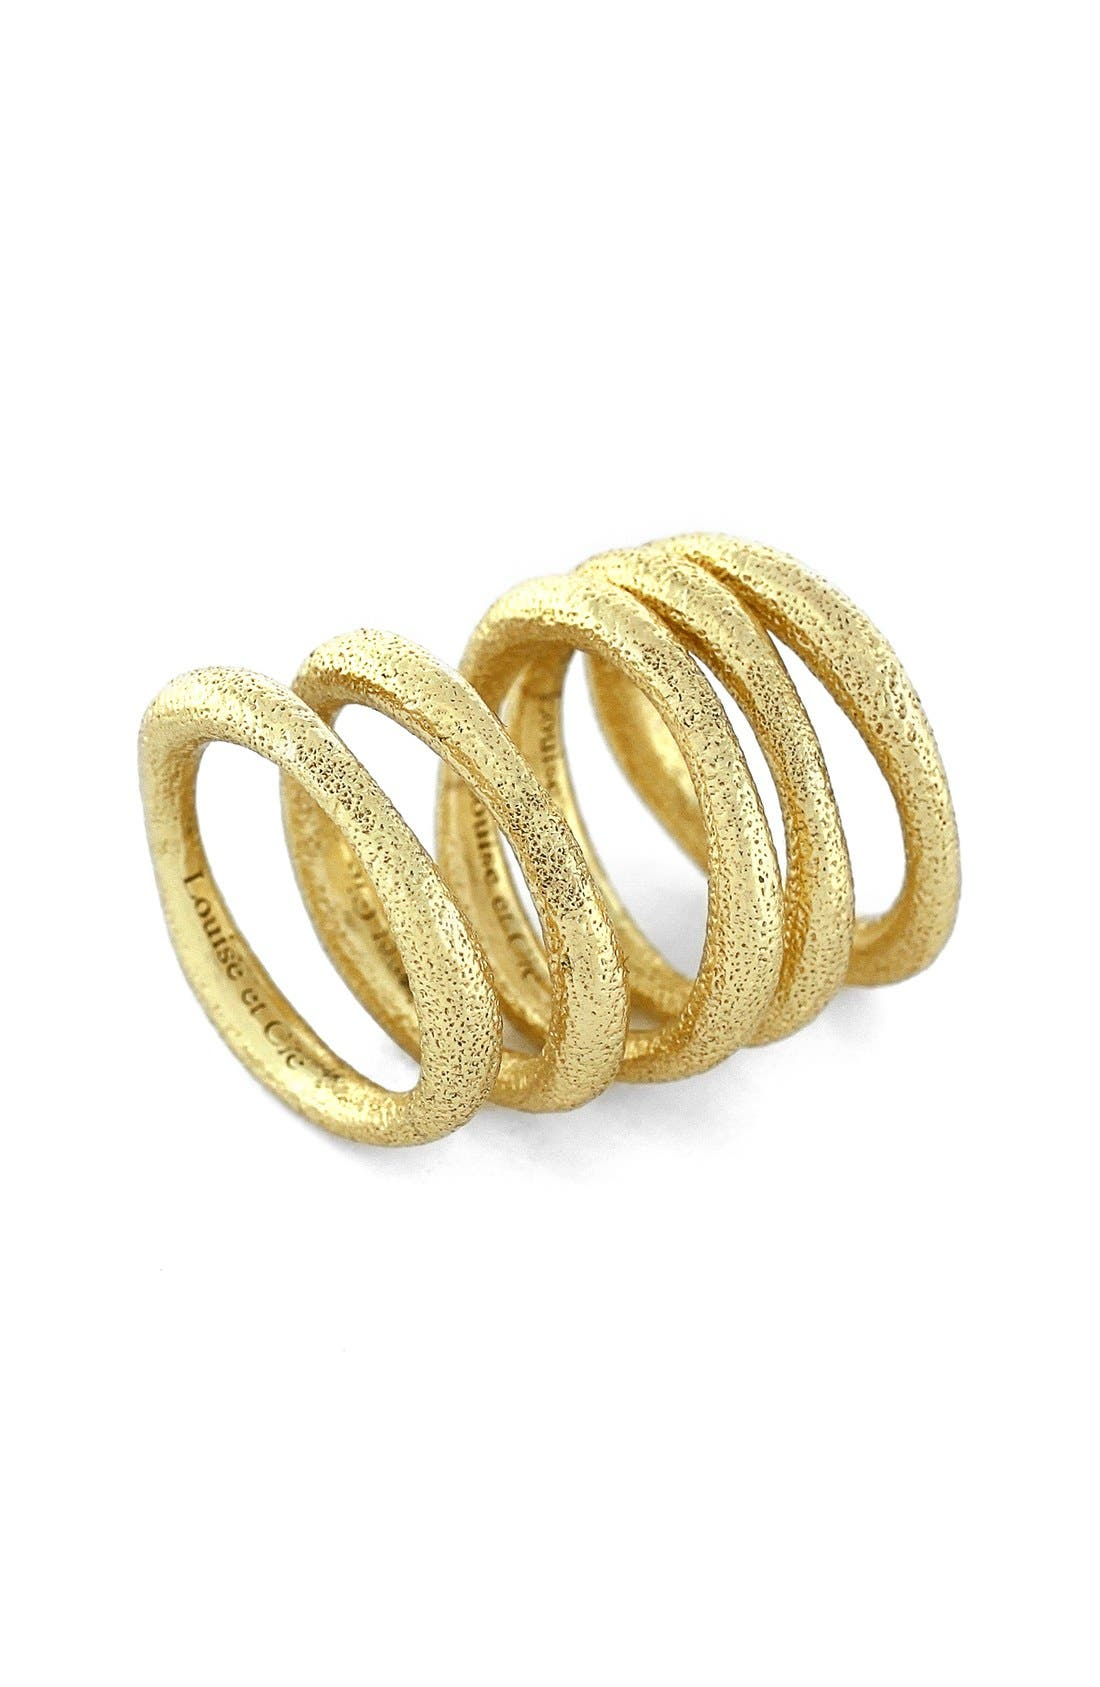 Alternate Image 1 Selected - Louise et Cie Textured Rings (Set of 5)